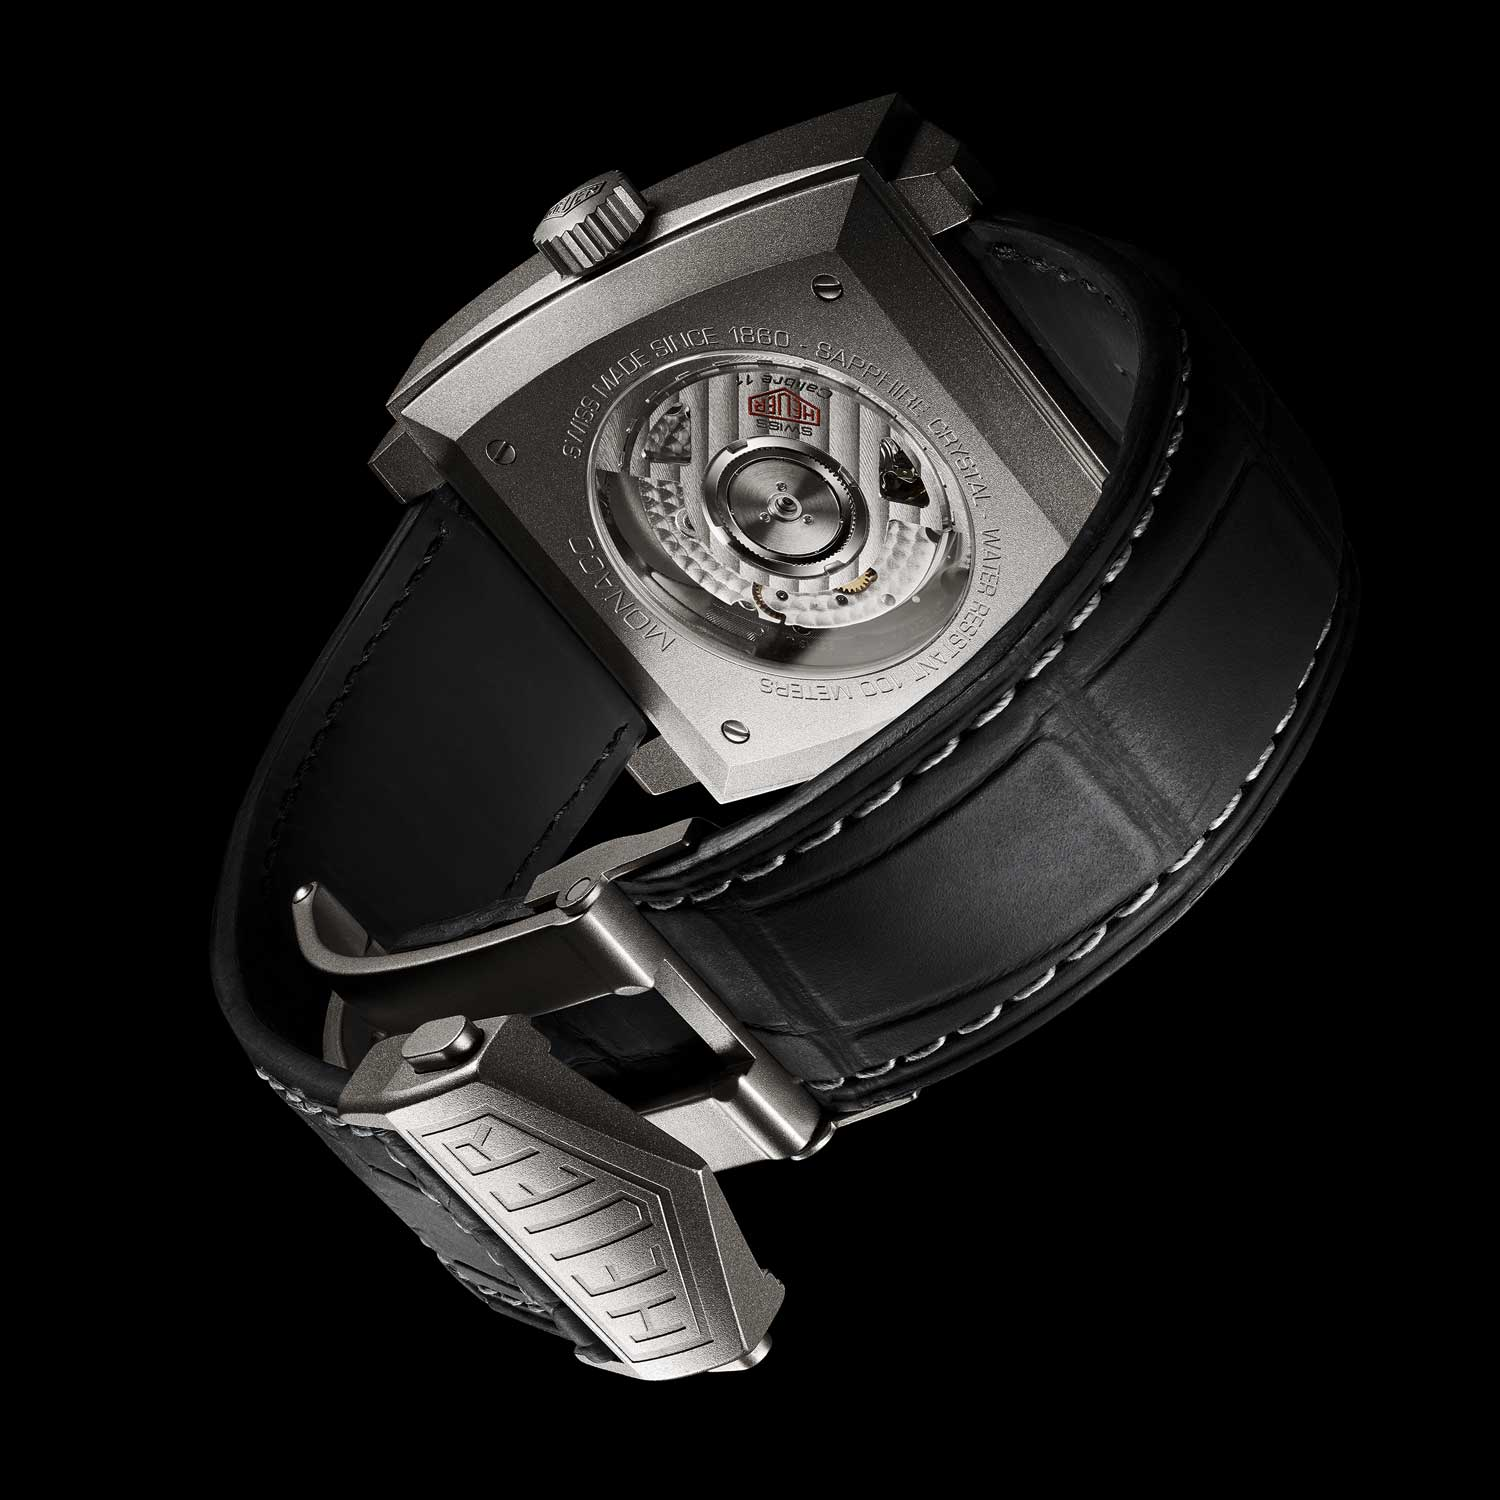 The watch is powered by TAG Heuer's Calibre 11 Automatic chronograph